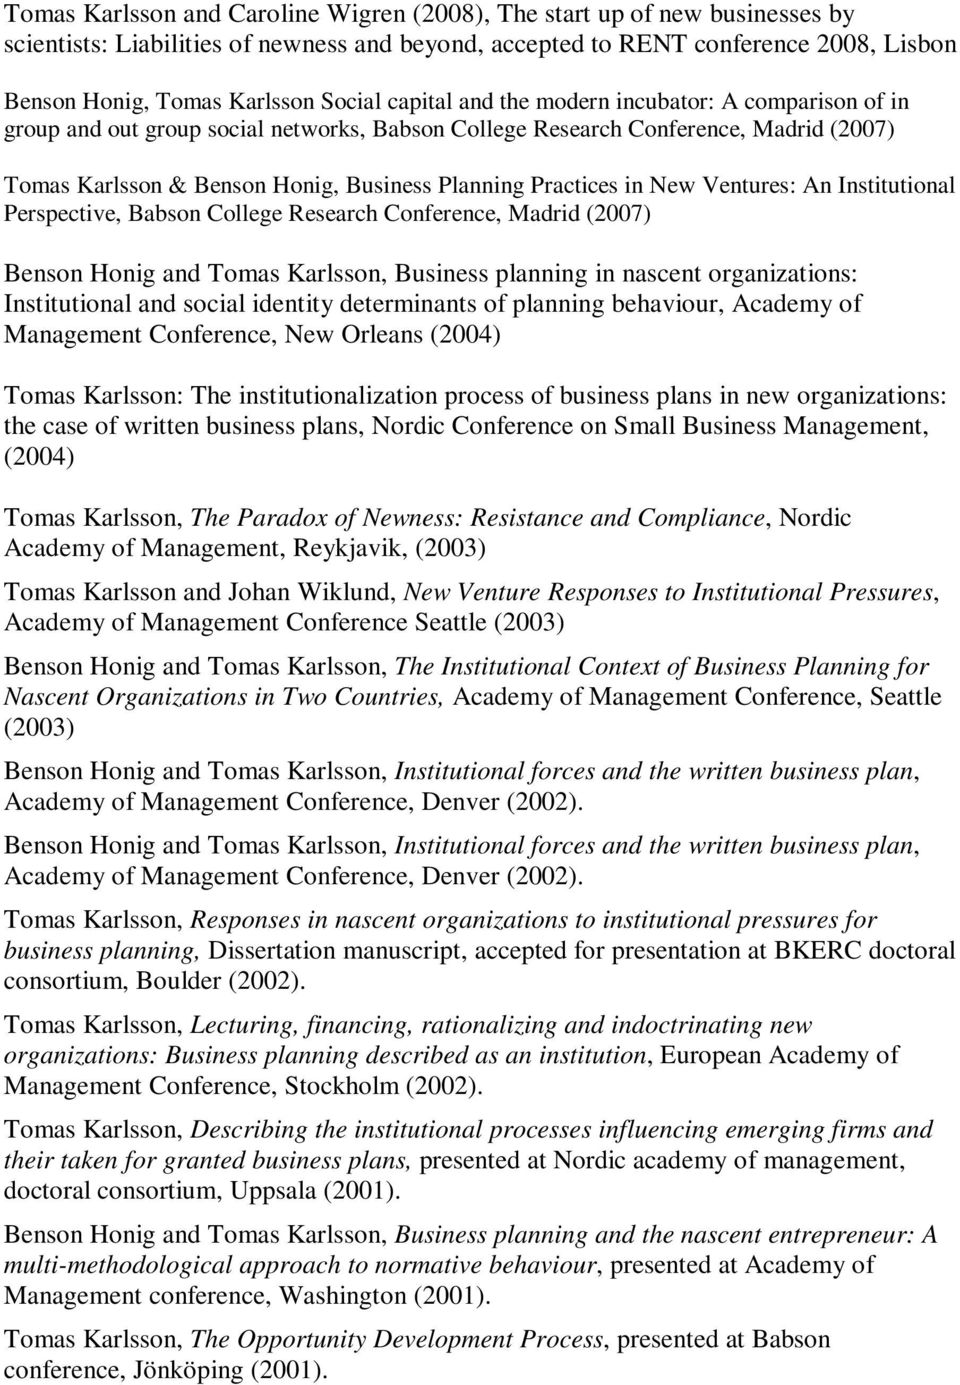 Institutinal Perspective, Babsn Cllege Research Cnference, Madrid (2007) Bensn Hnig and Tmas Karlssn, Business planning in nascent rganizatins: Institutinal and scial identity determinants f planning